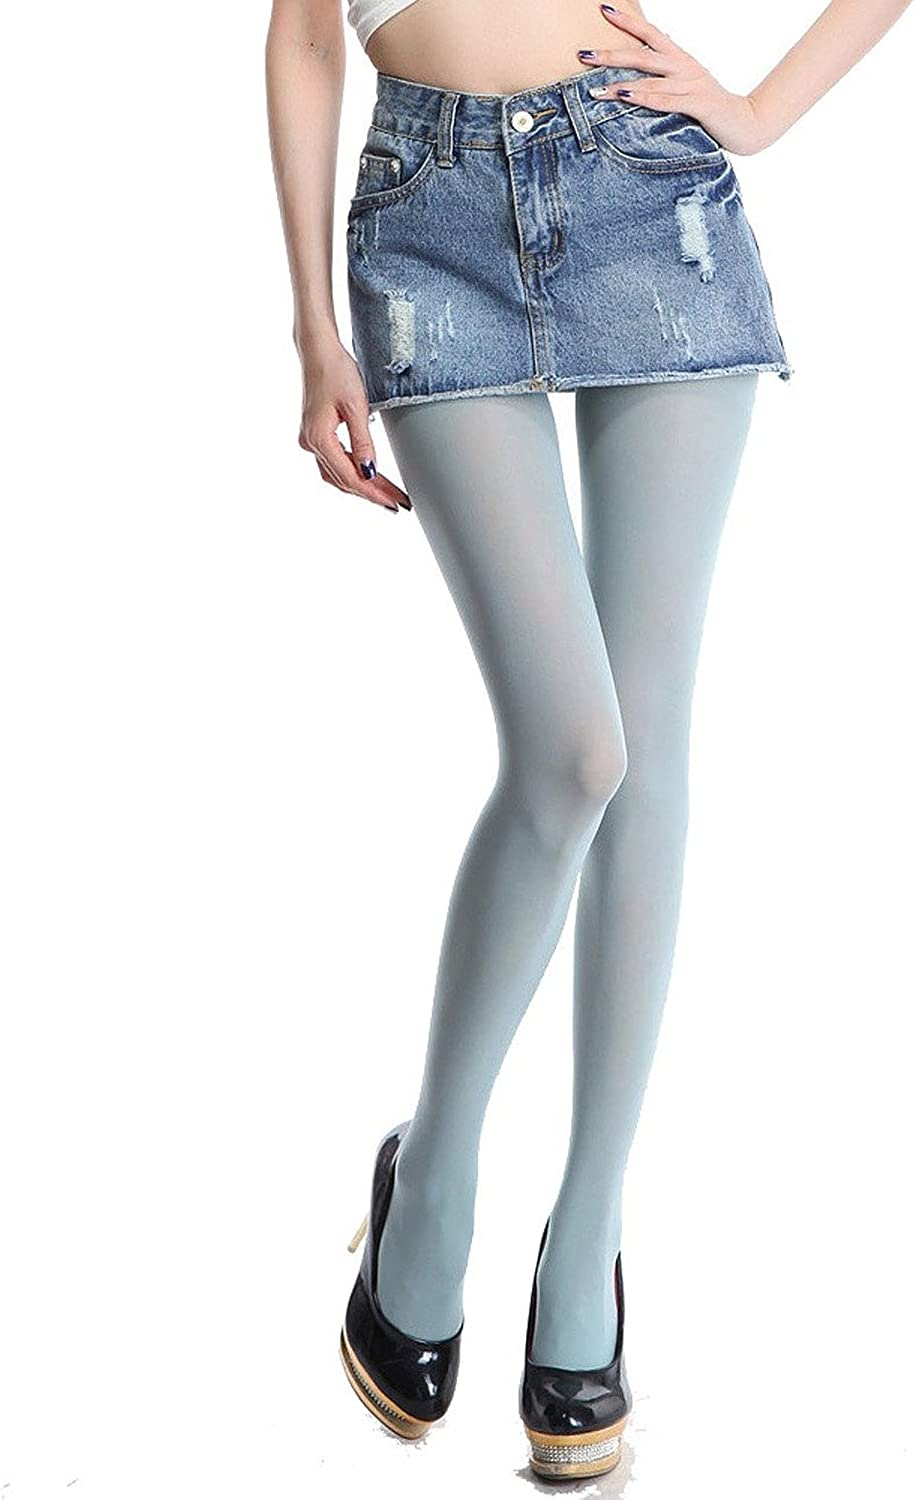 Siftantin Women's Solid Colored Footed Tights